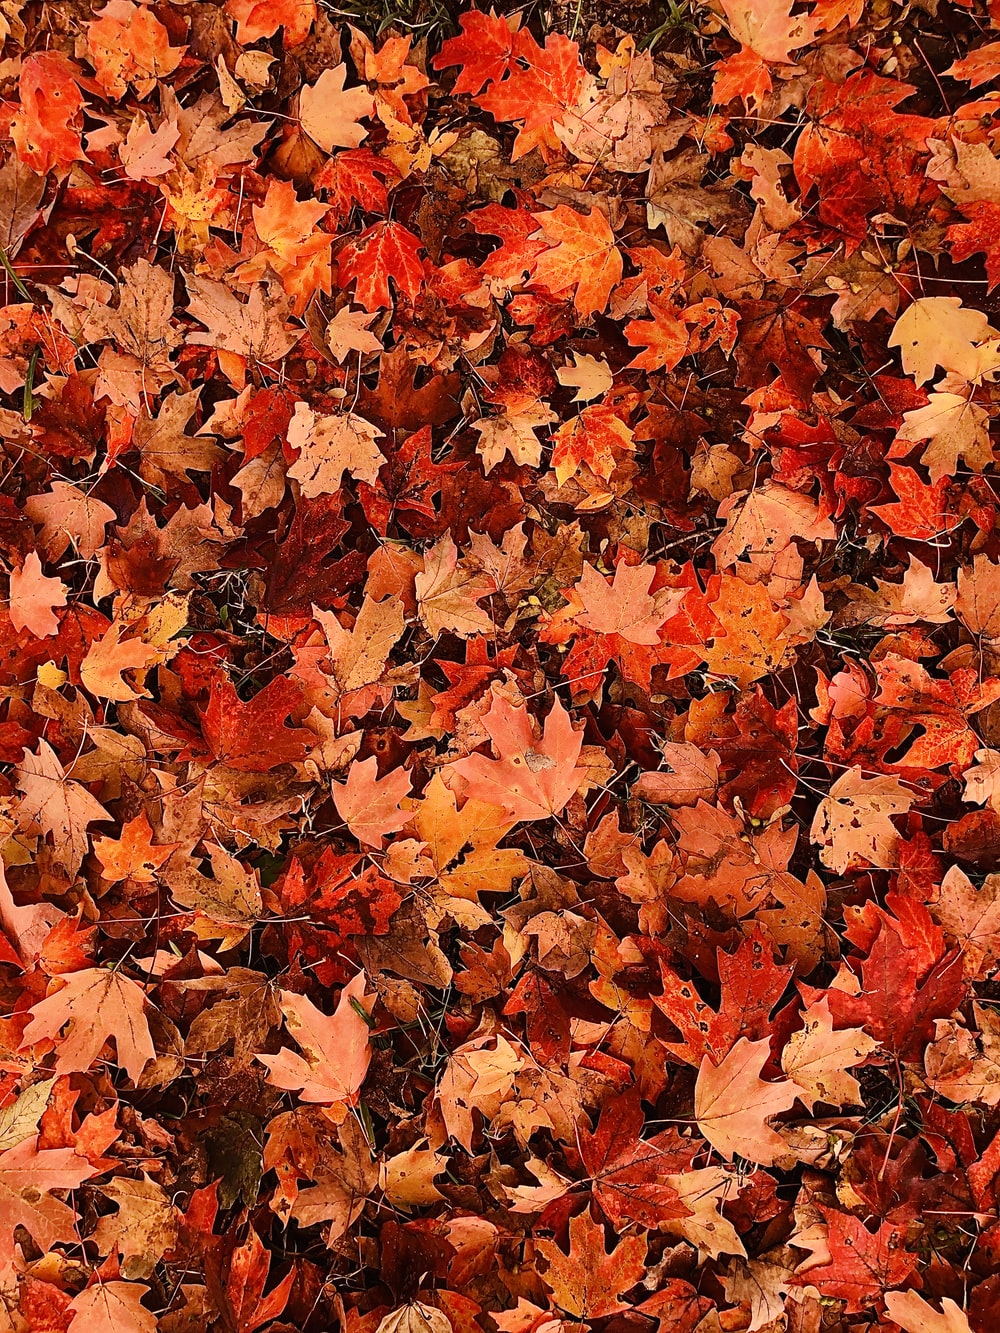 red and orange leaves pile